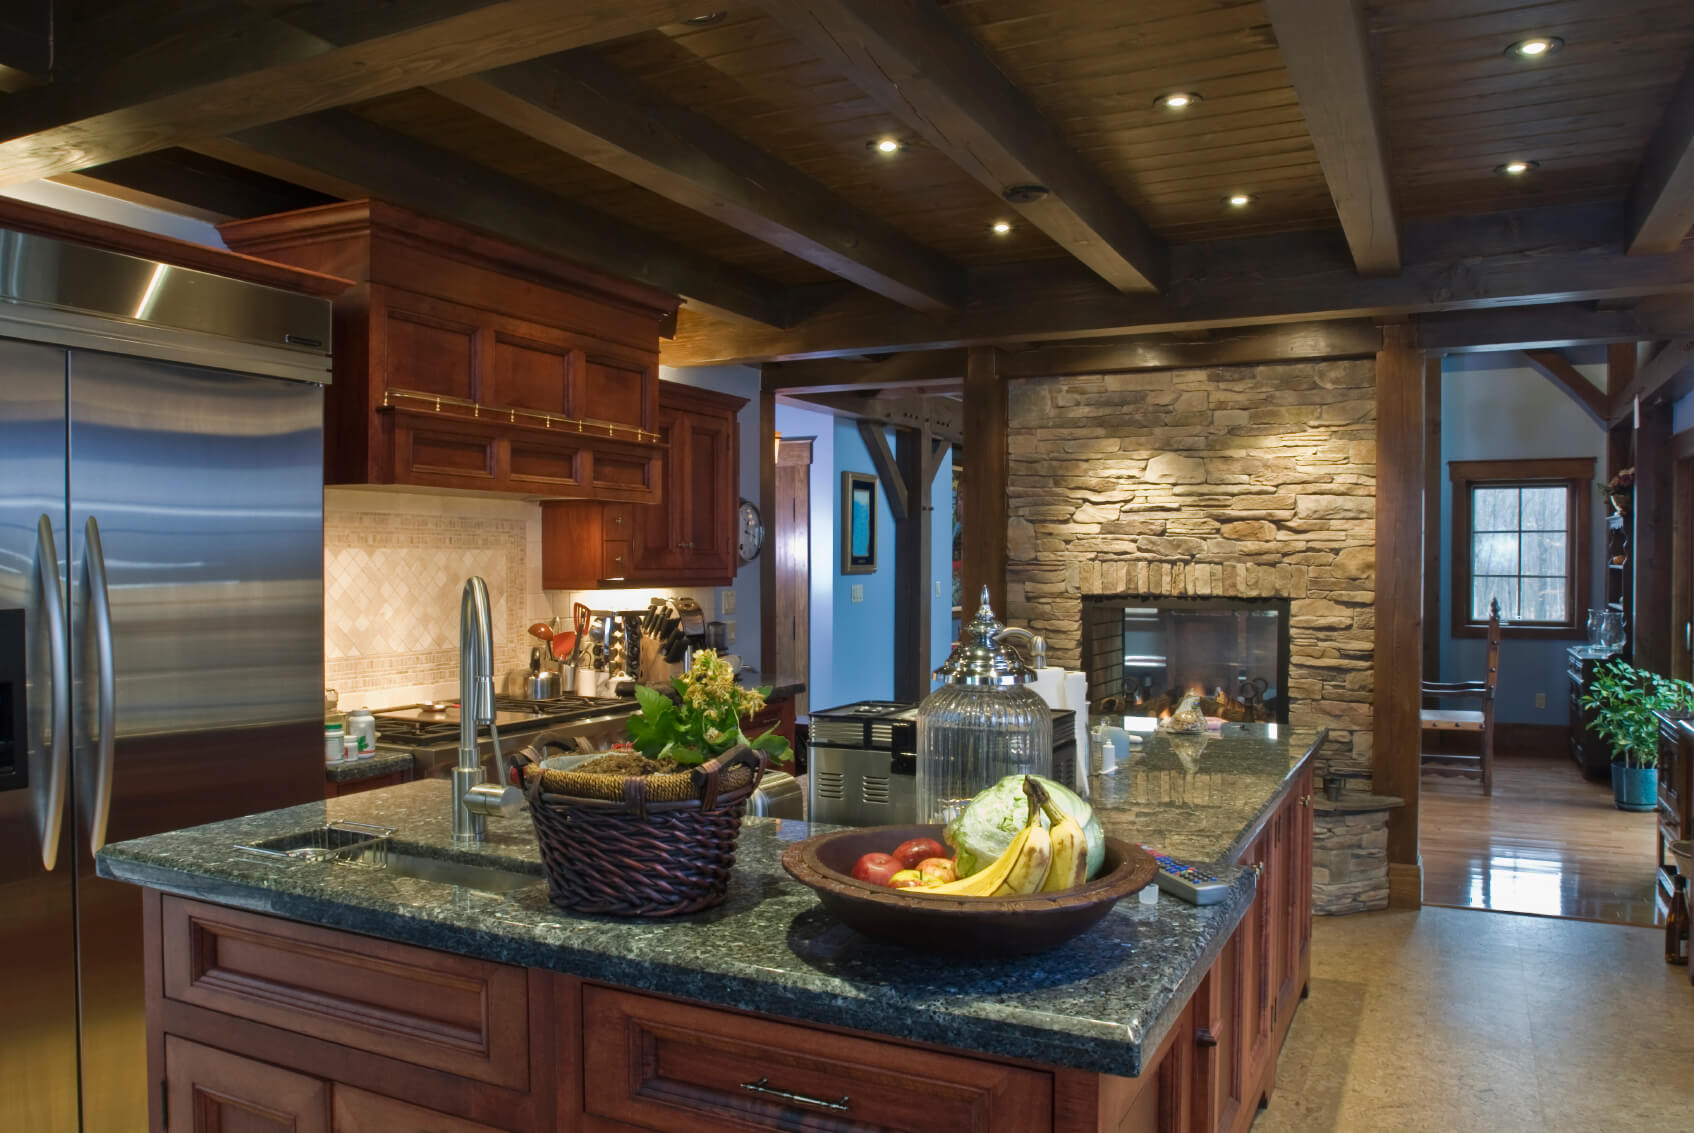 kitchen cabinets and countertops. Rustic look kitchen features brick pass through fireplace under dark wood  exposed beams with 52 Dark Kitchens Wood and Black Kitchen Cabinets